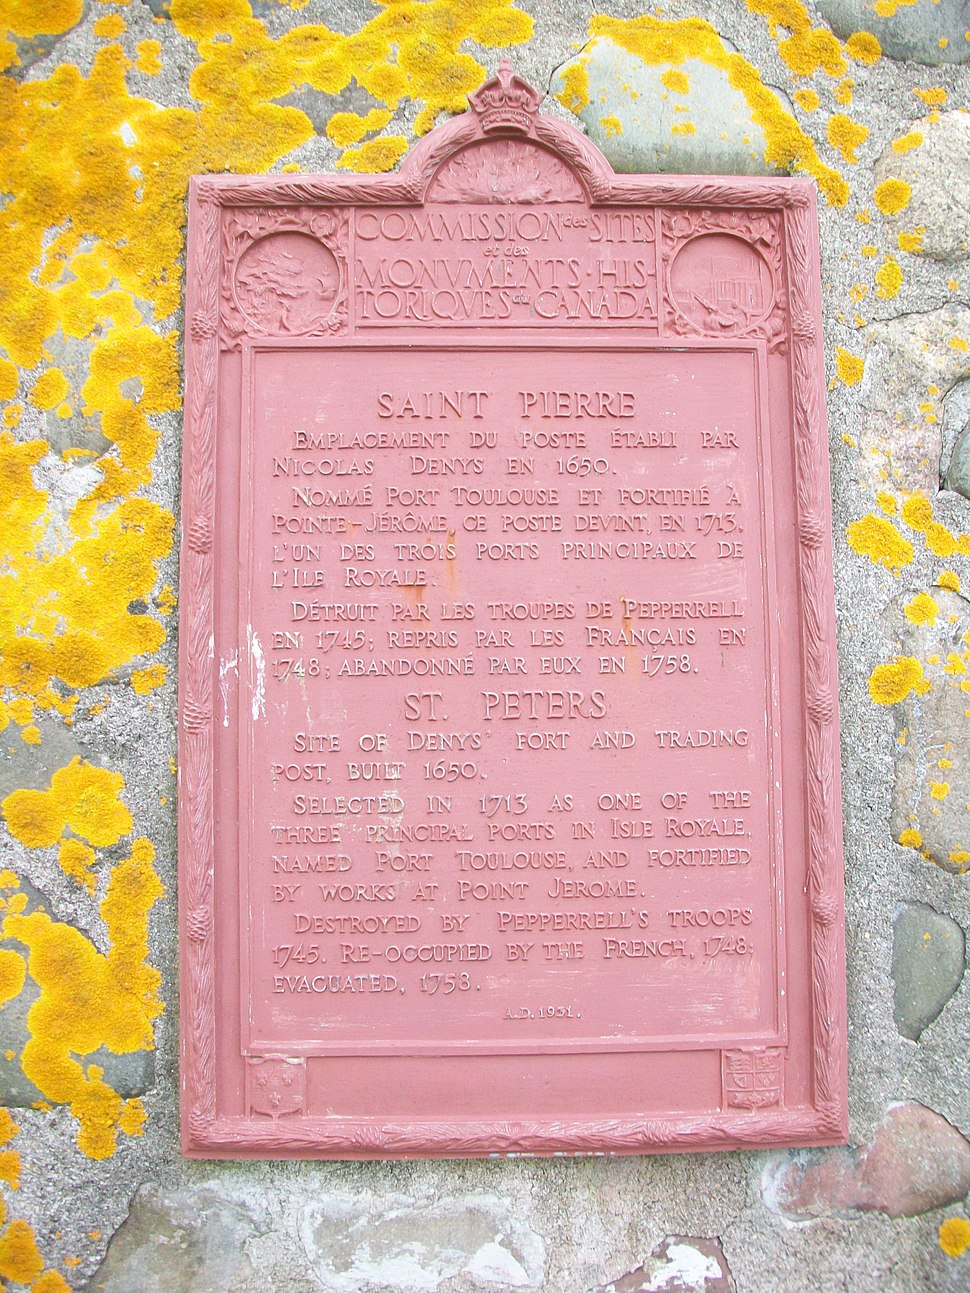 Detail of plaque on Saint-Pierre monument, St. Peter%27s, NS